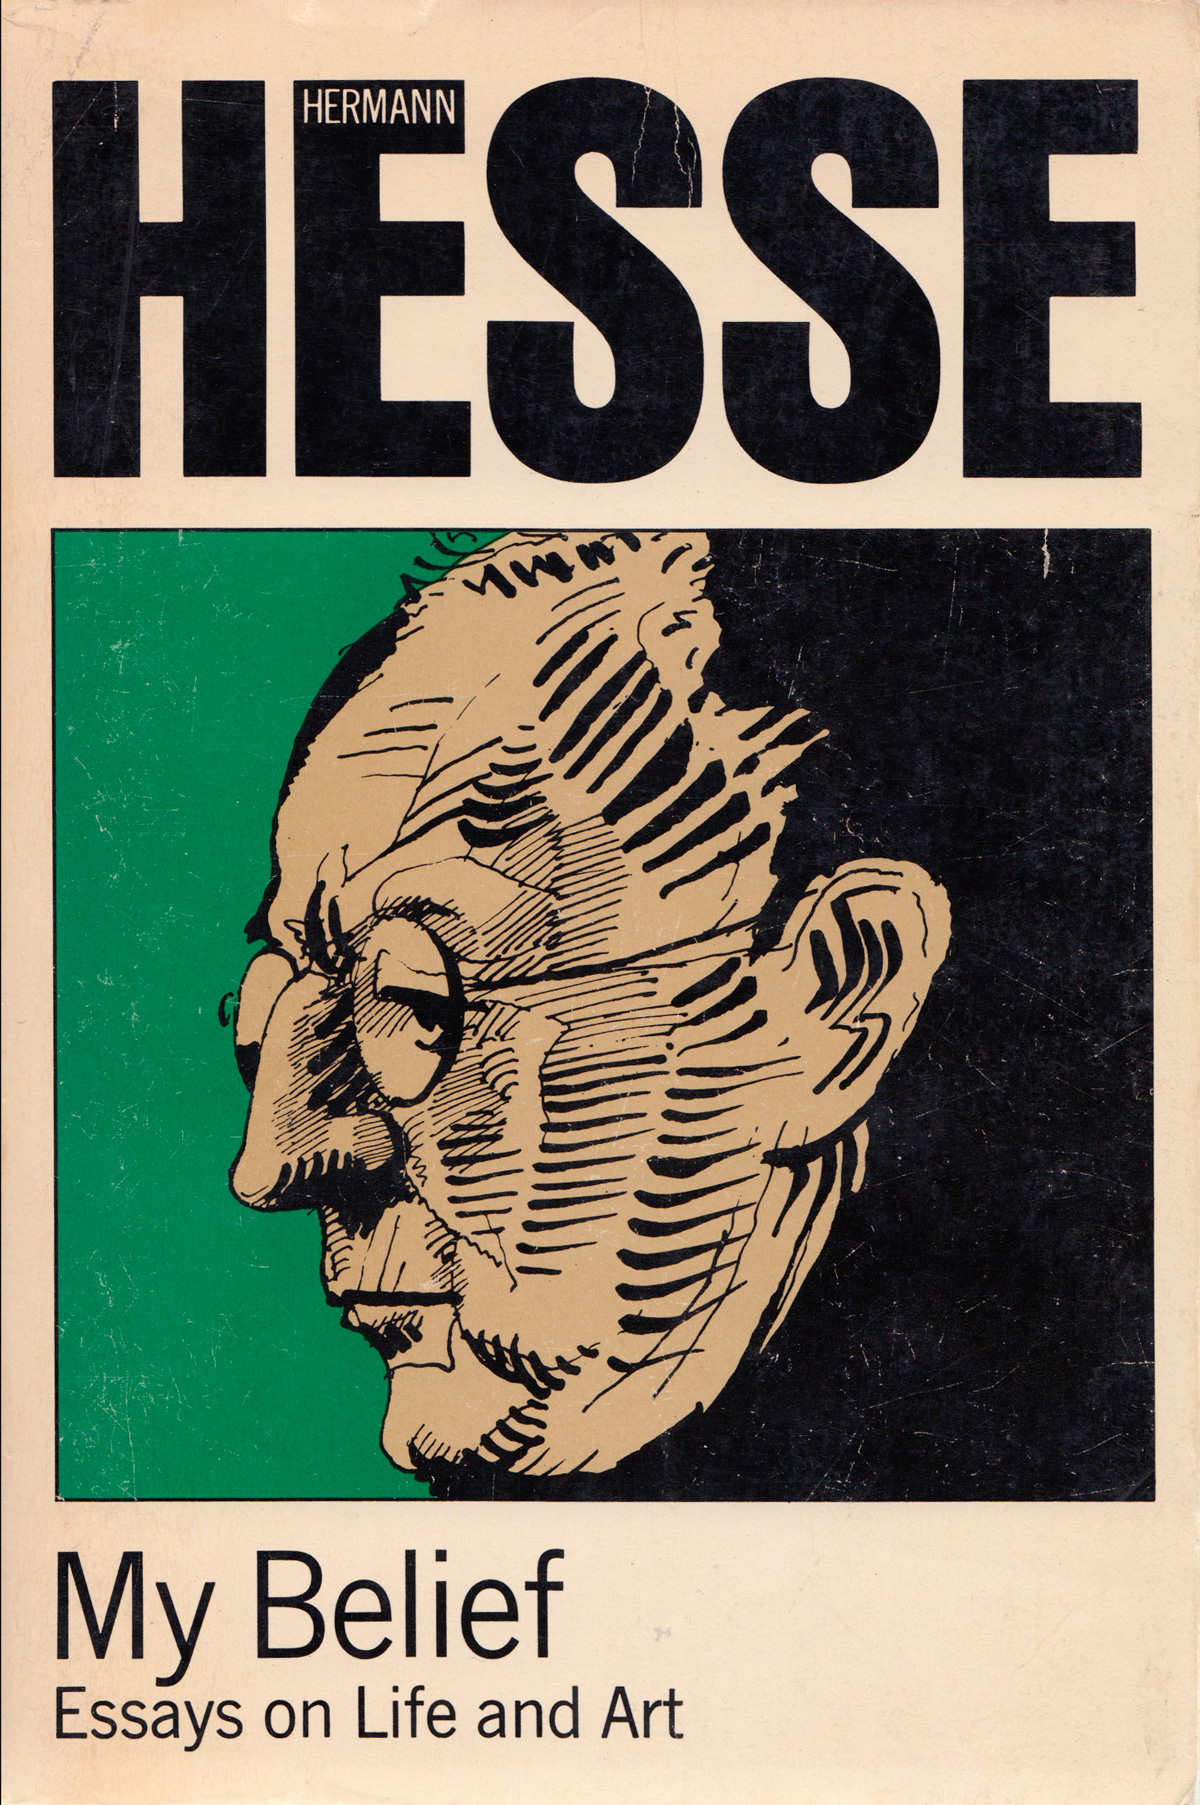 Hermann Hesse on the Three Types of Readers and the Most Transcendent Form of Reading